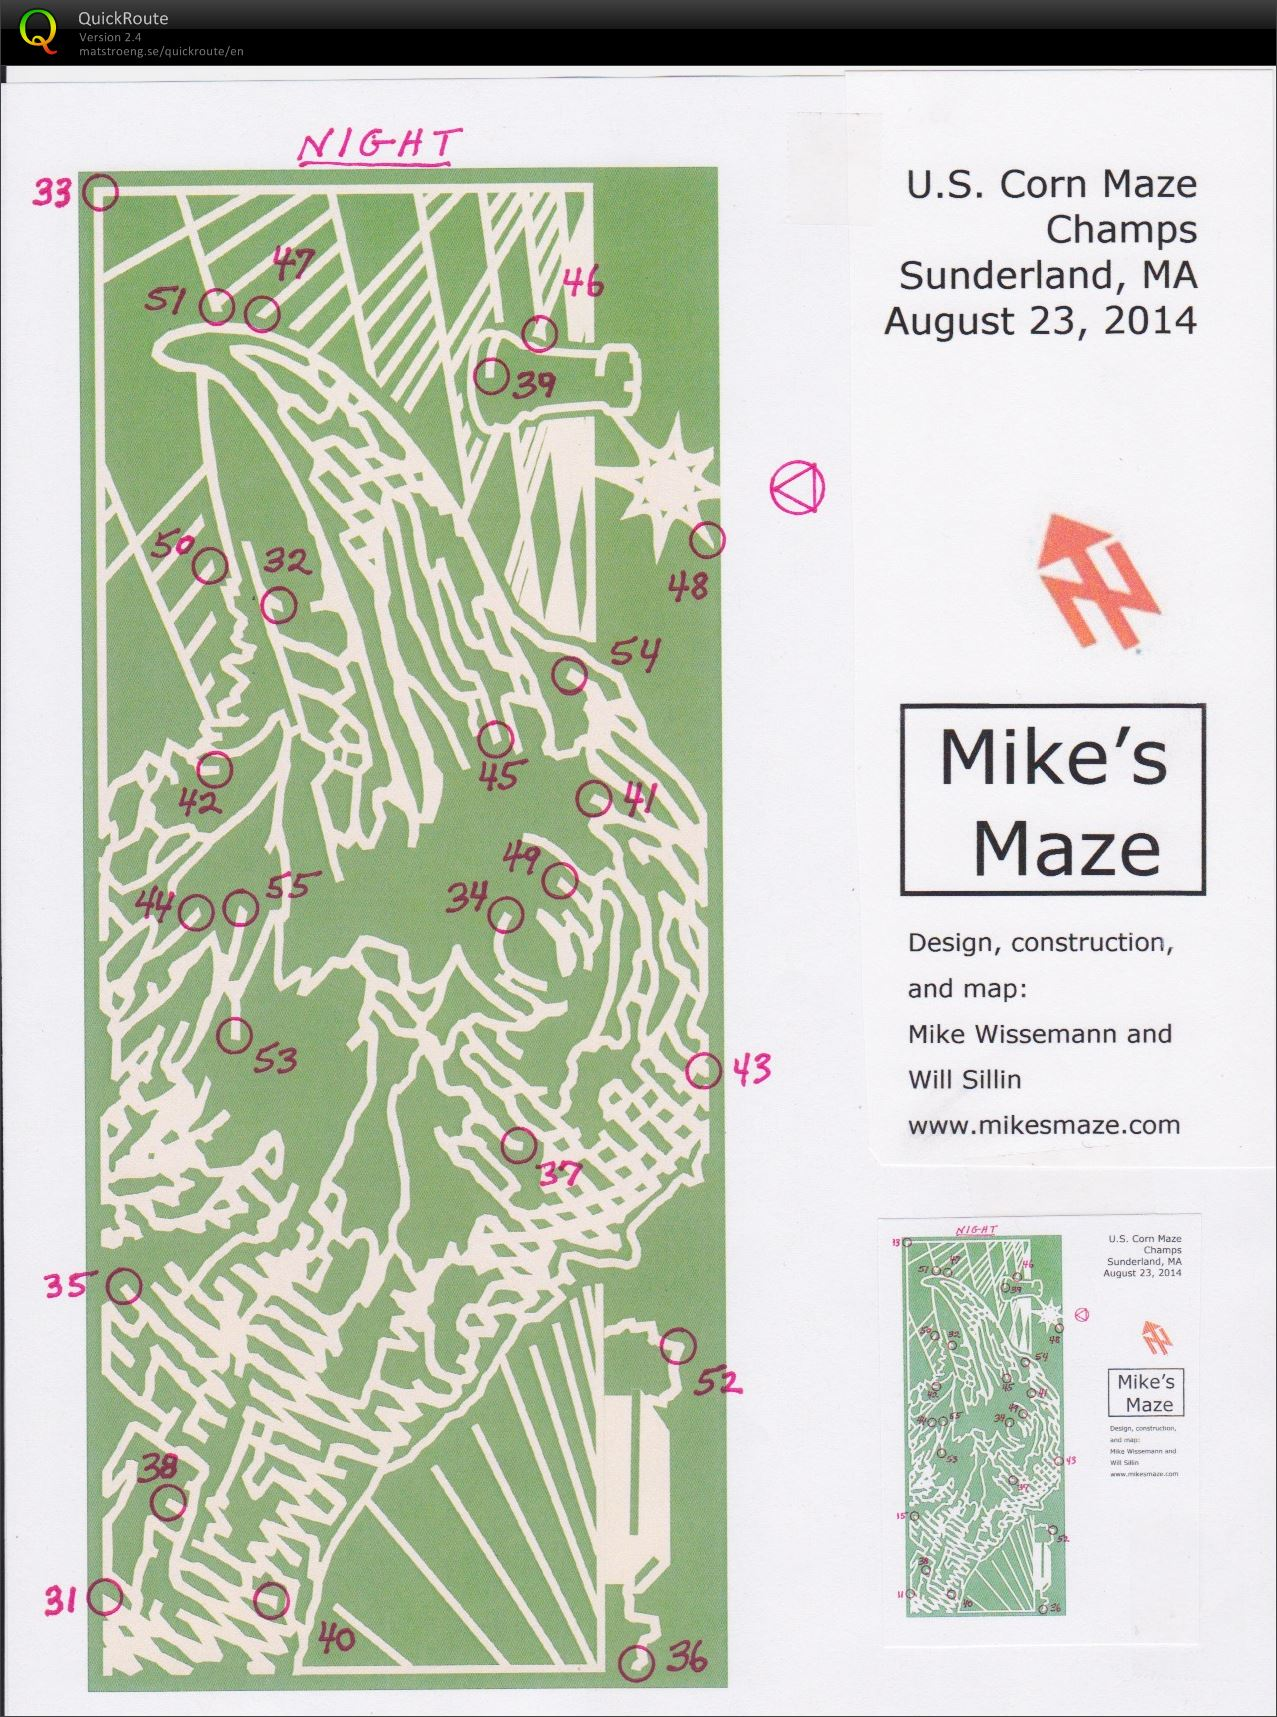 Corn Maze Night (24/08/2014)